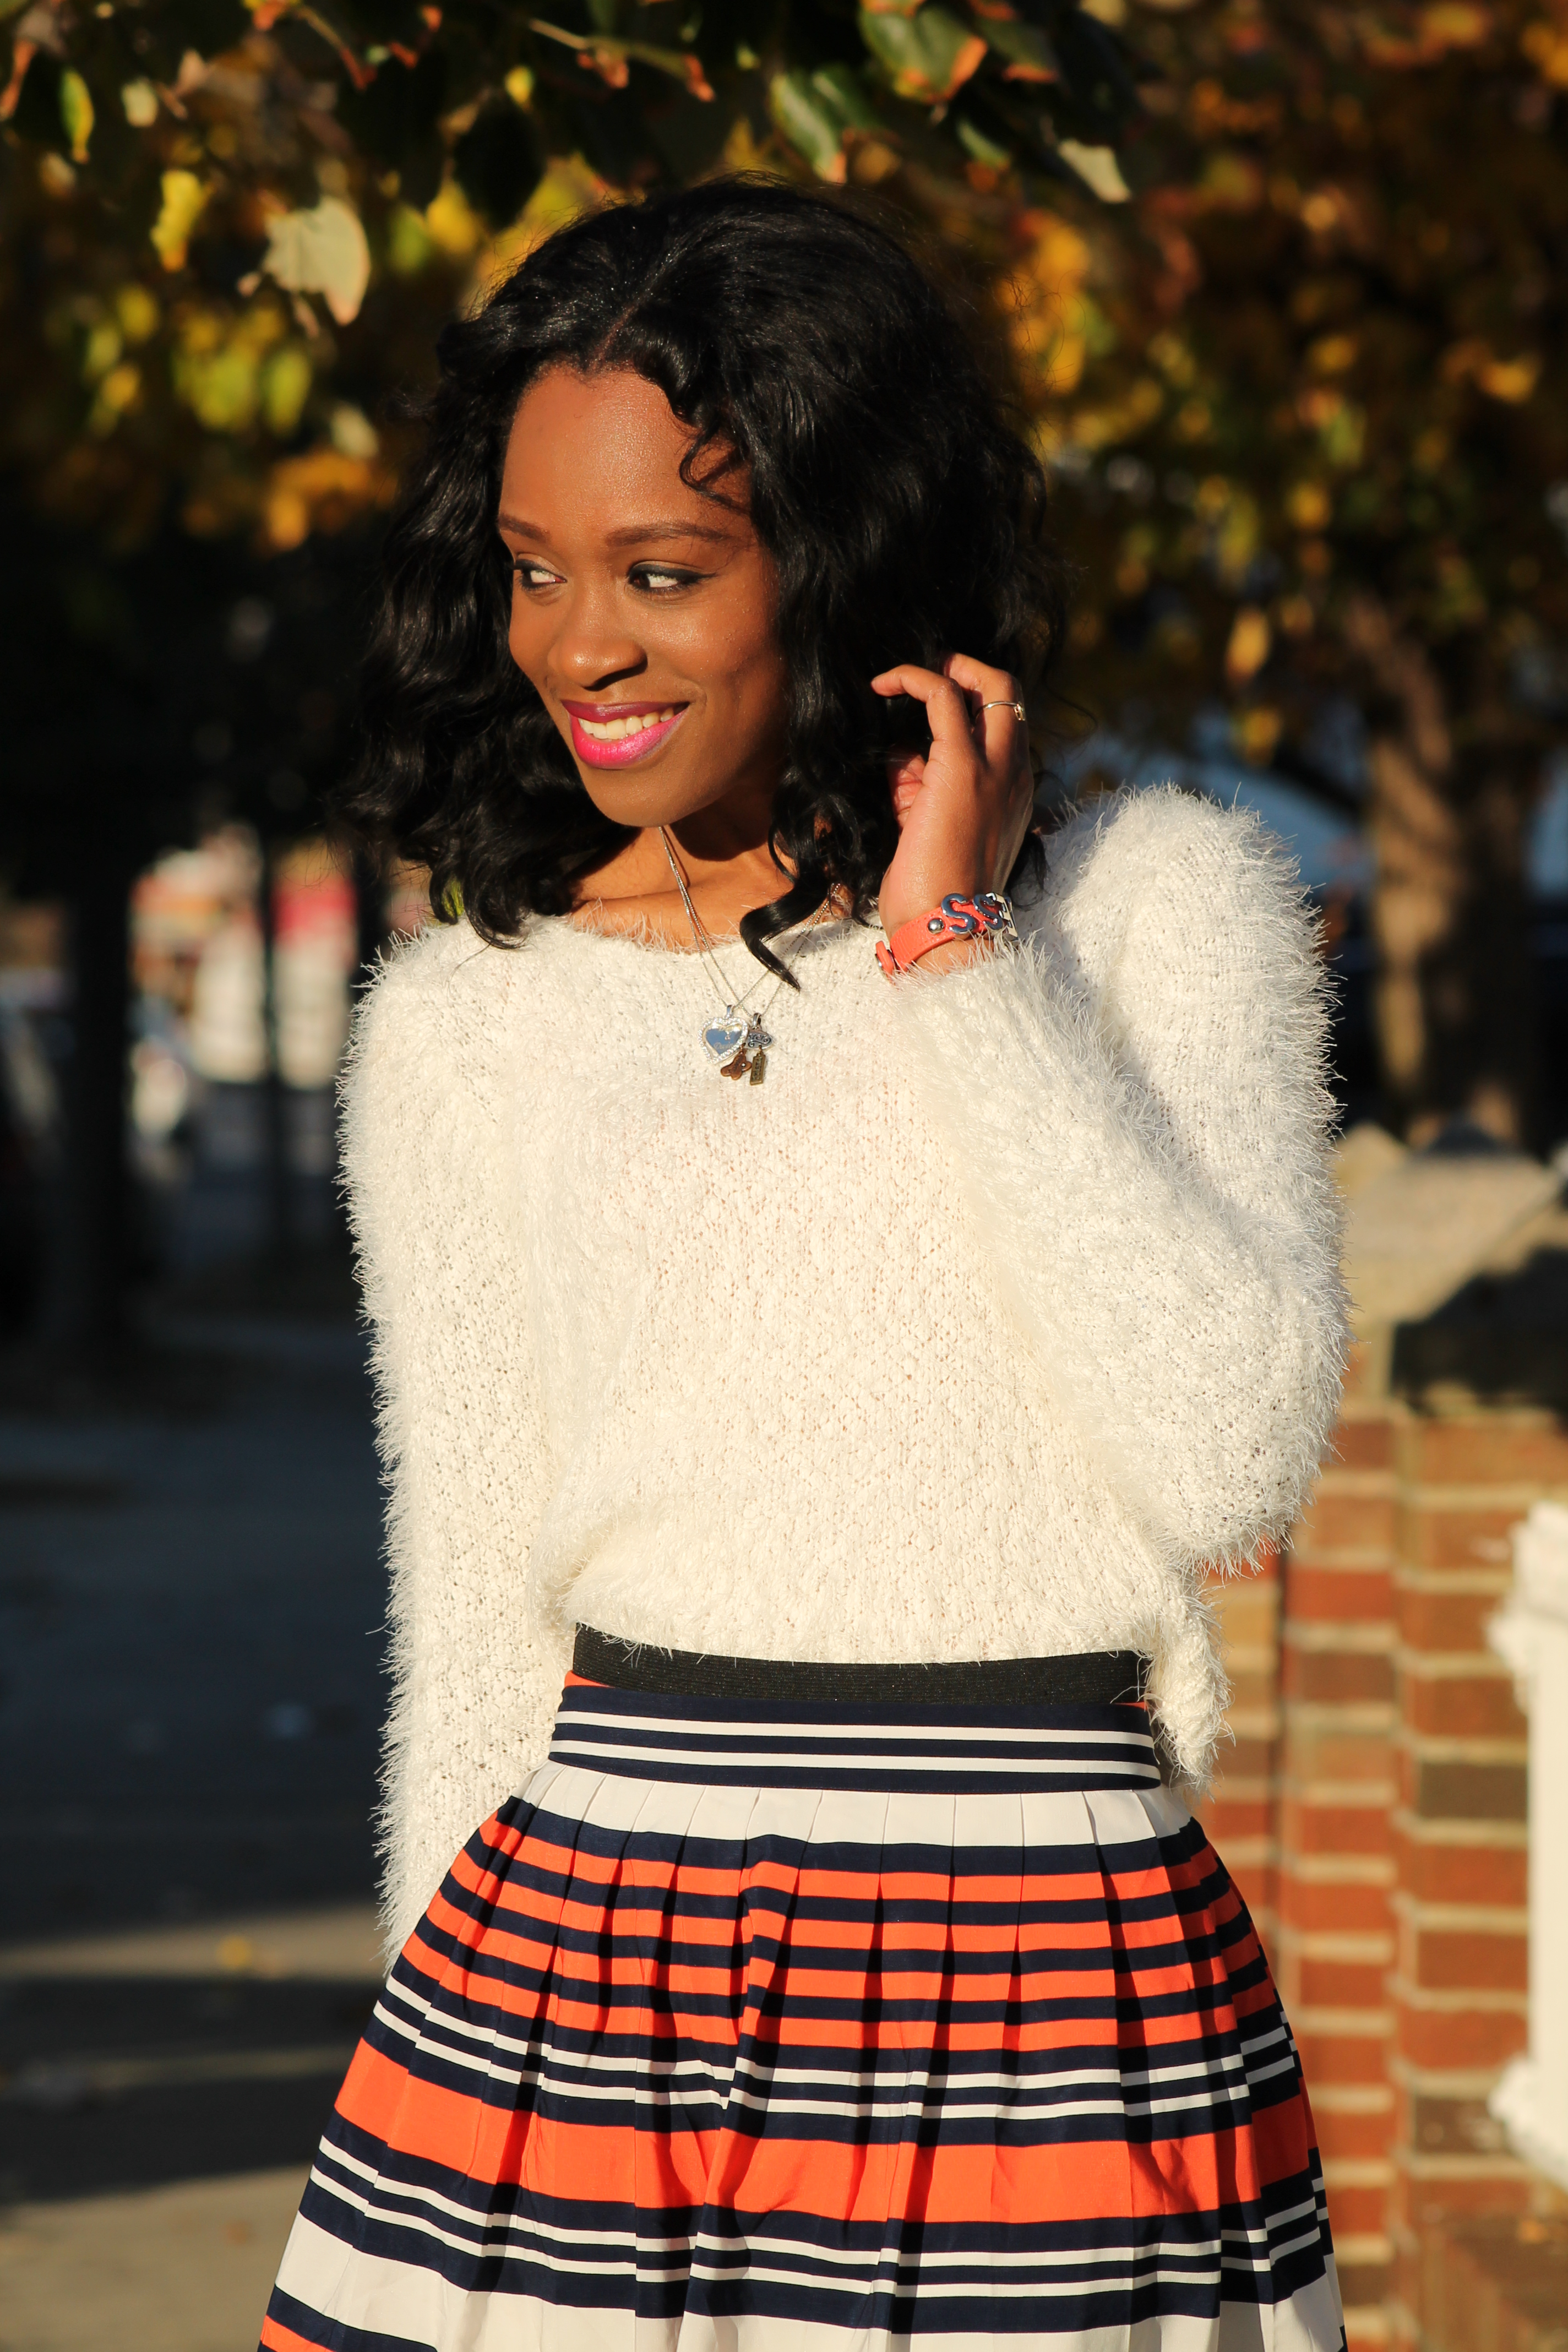 Striped skirt + over the knee boots + fluffy sweater (10)